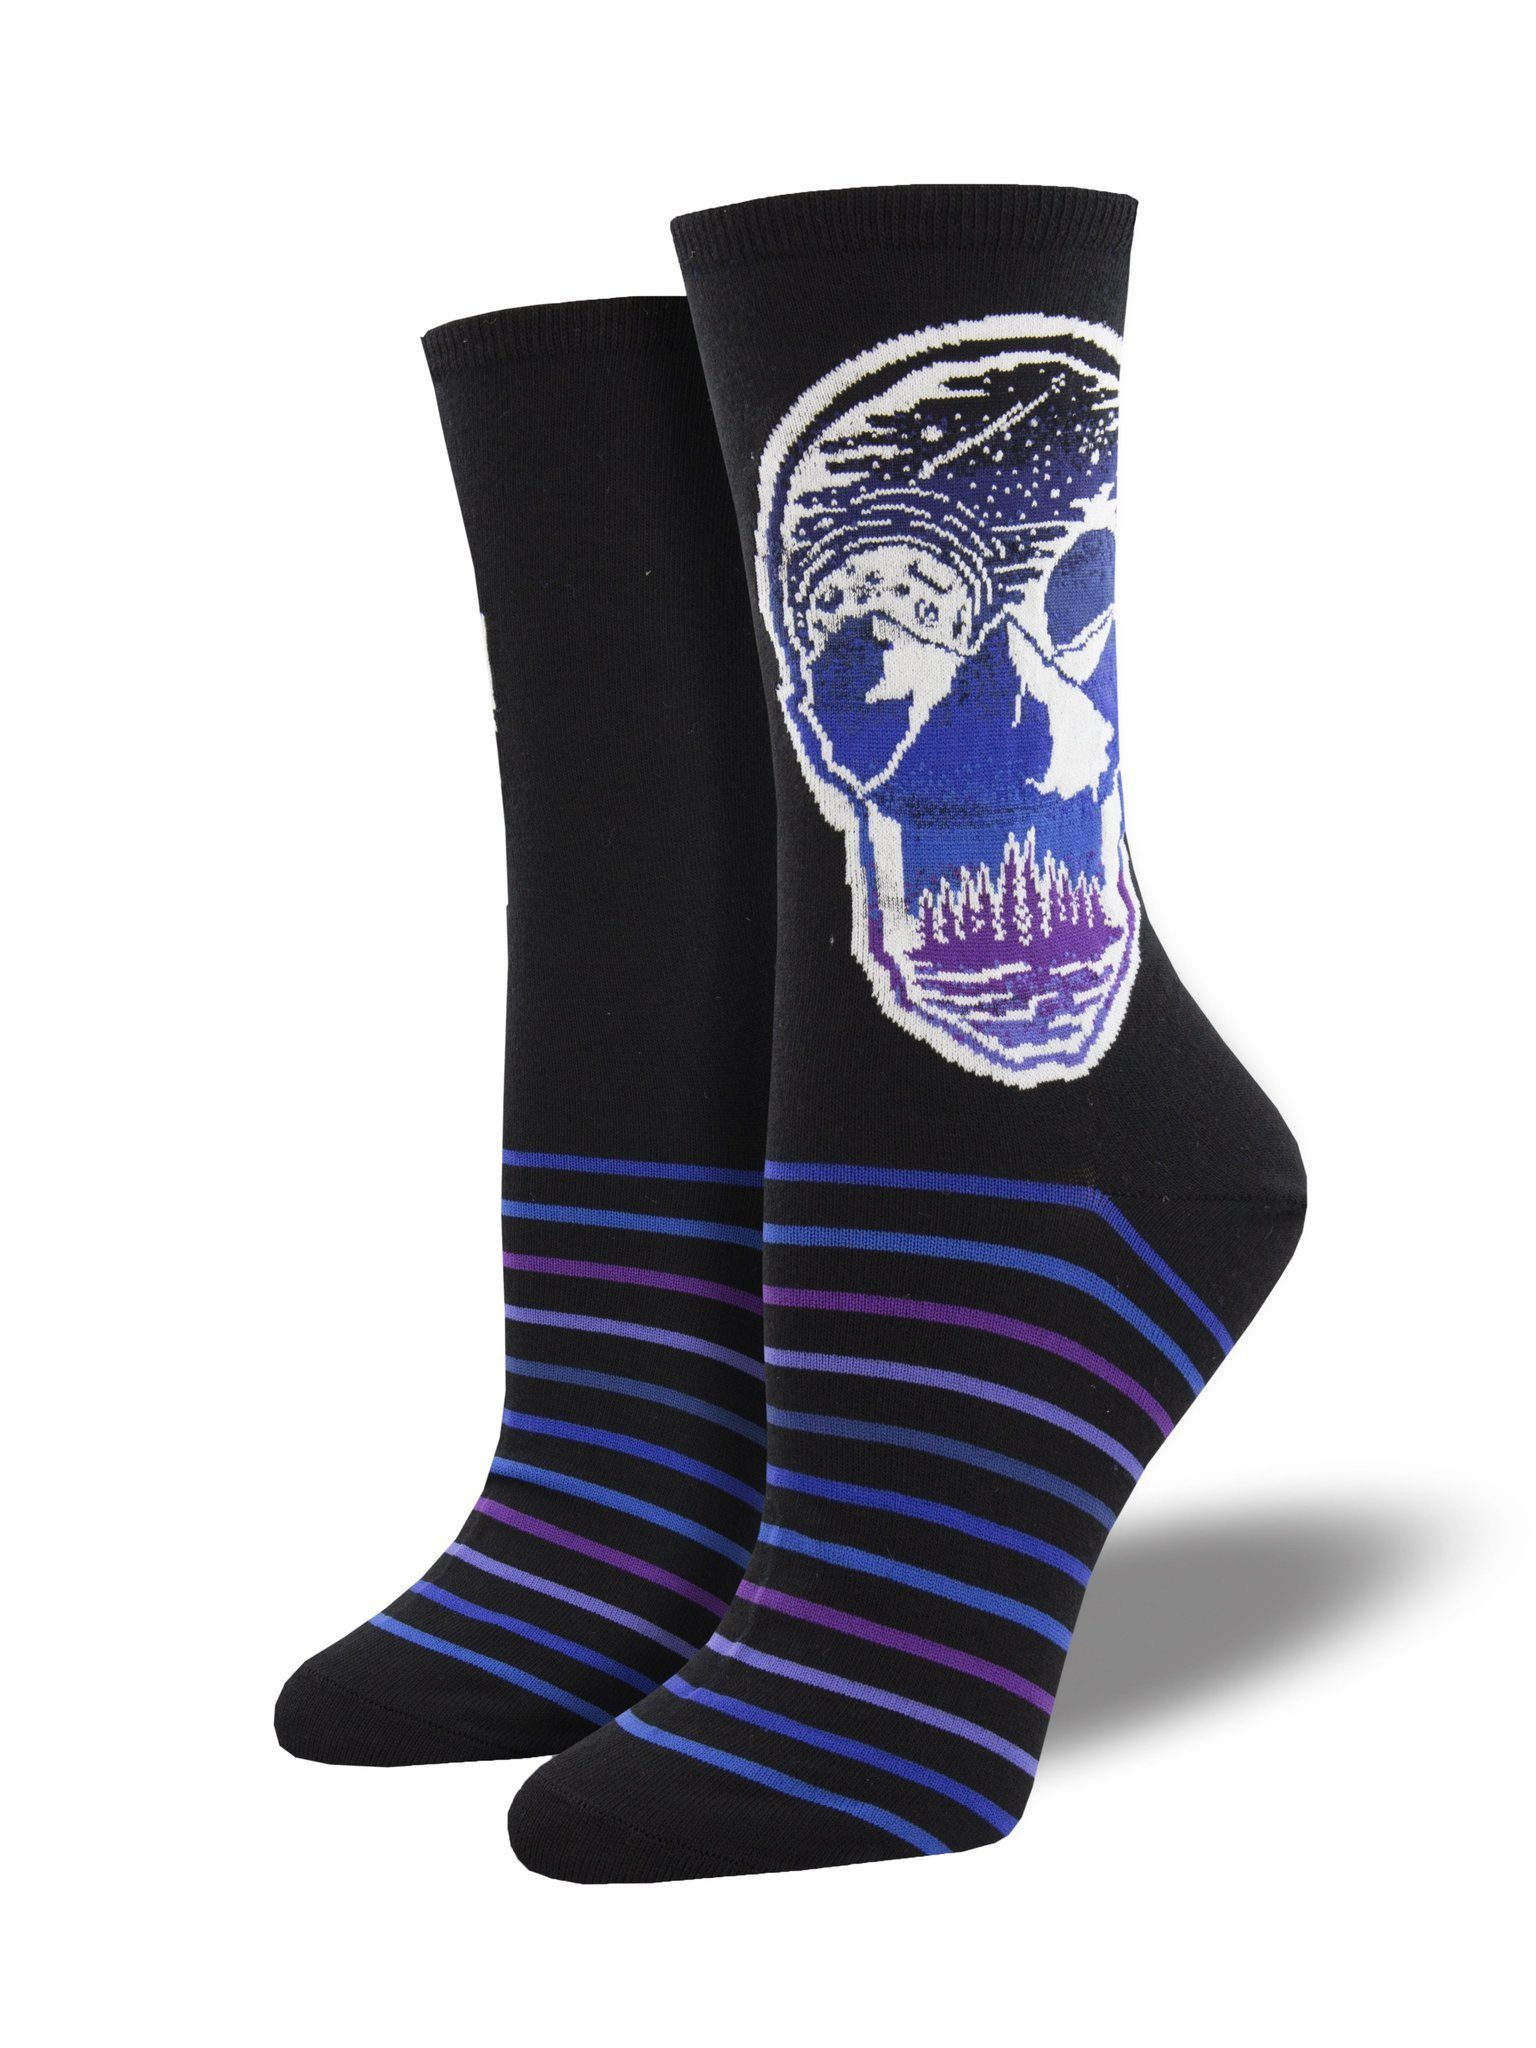 Socksmith - Atomicchild Majestic Skull Crew Socks | Women's - Knock Your Socks Off